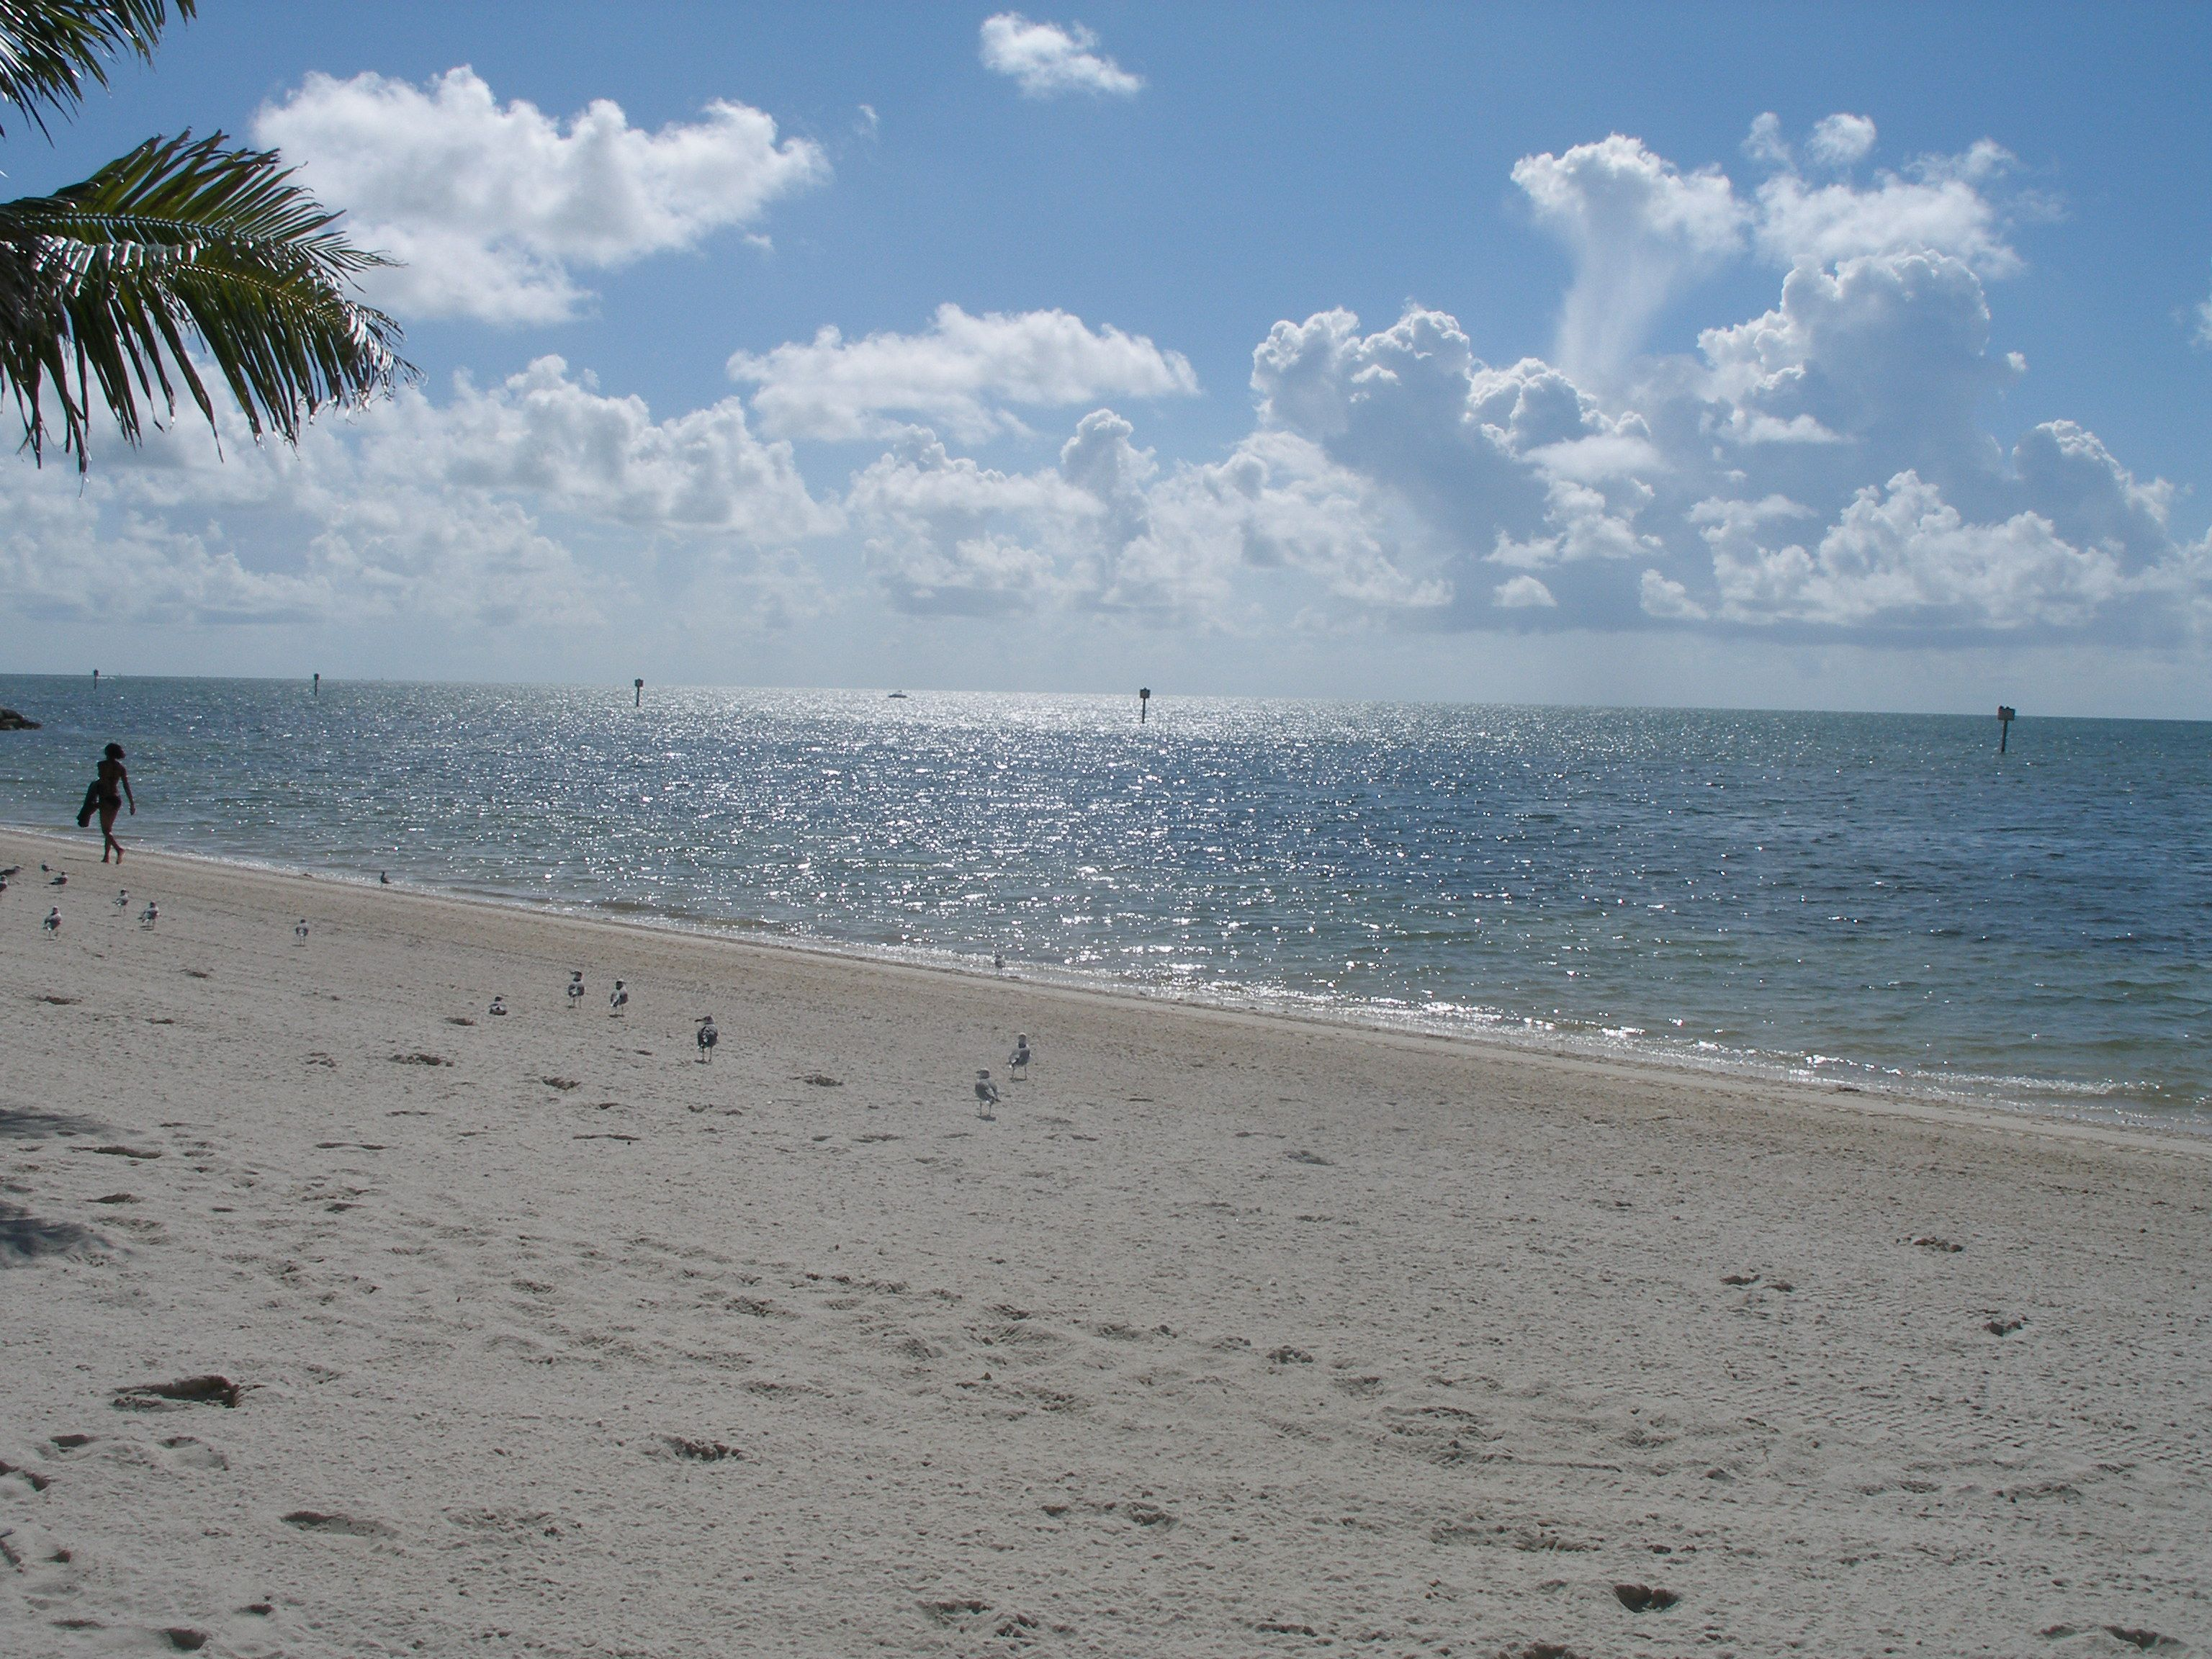 Key West is an outdoorsy kind of place. A Florida Keys Girl, gives advice on livin' it up in Key West rain or shine.